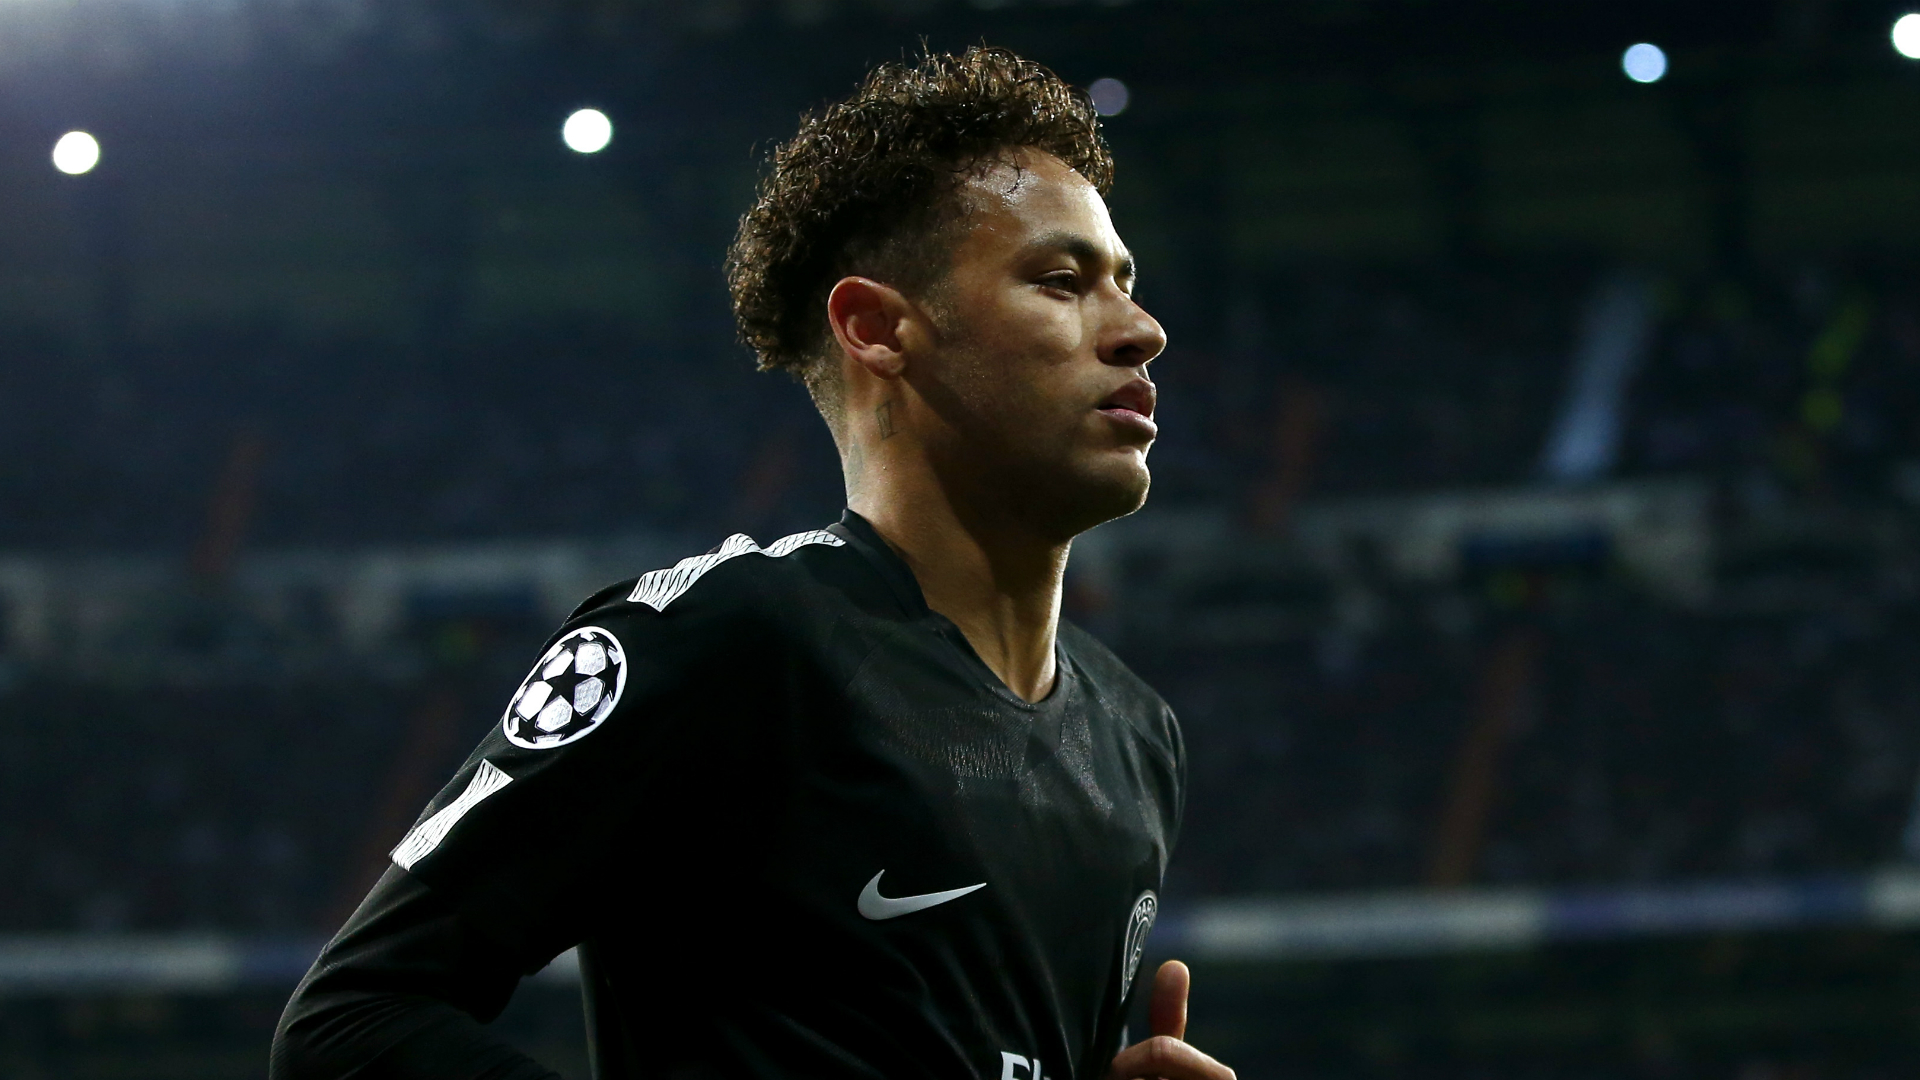 UEFA open investigation into Neymar over his comments on VAR